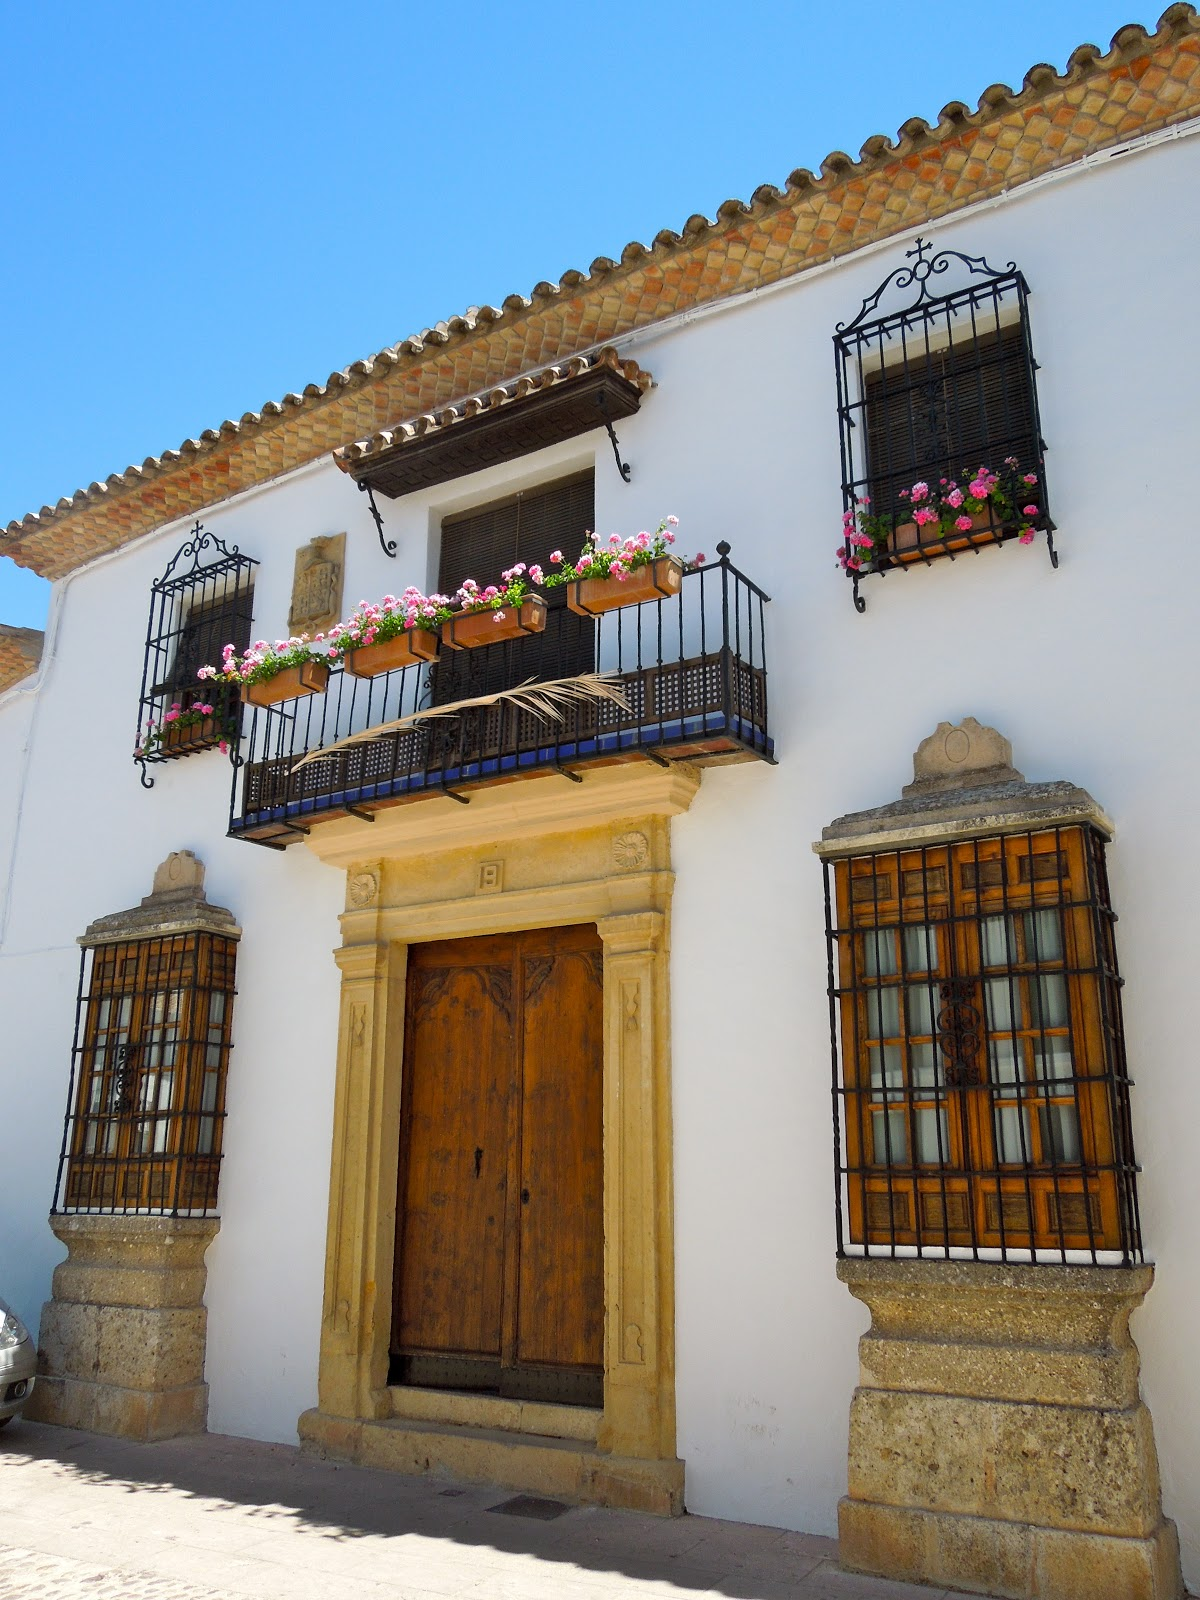 To Europe With Kids: The Dramatic Cliffside Town of Ronda